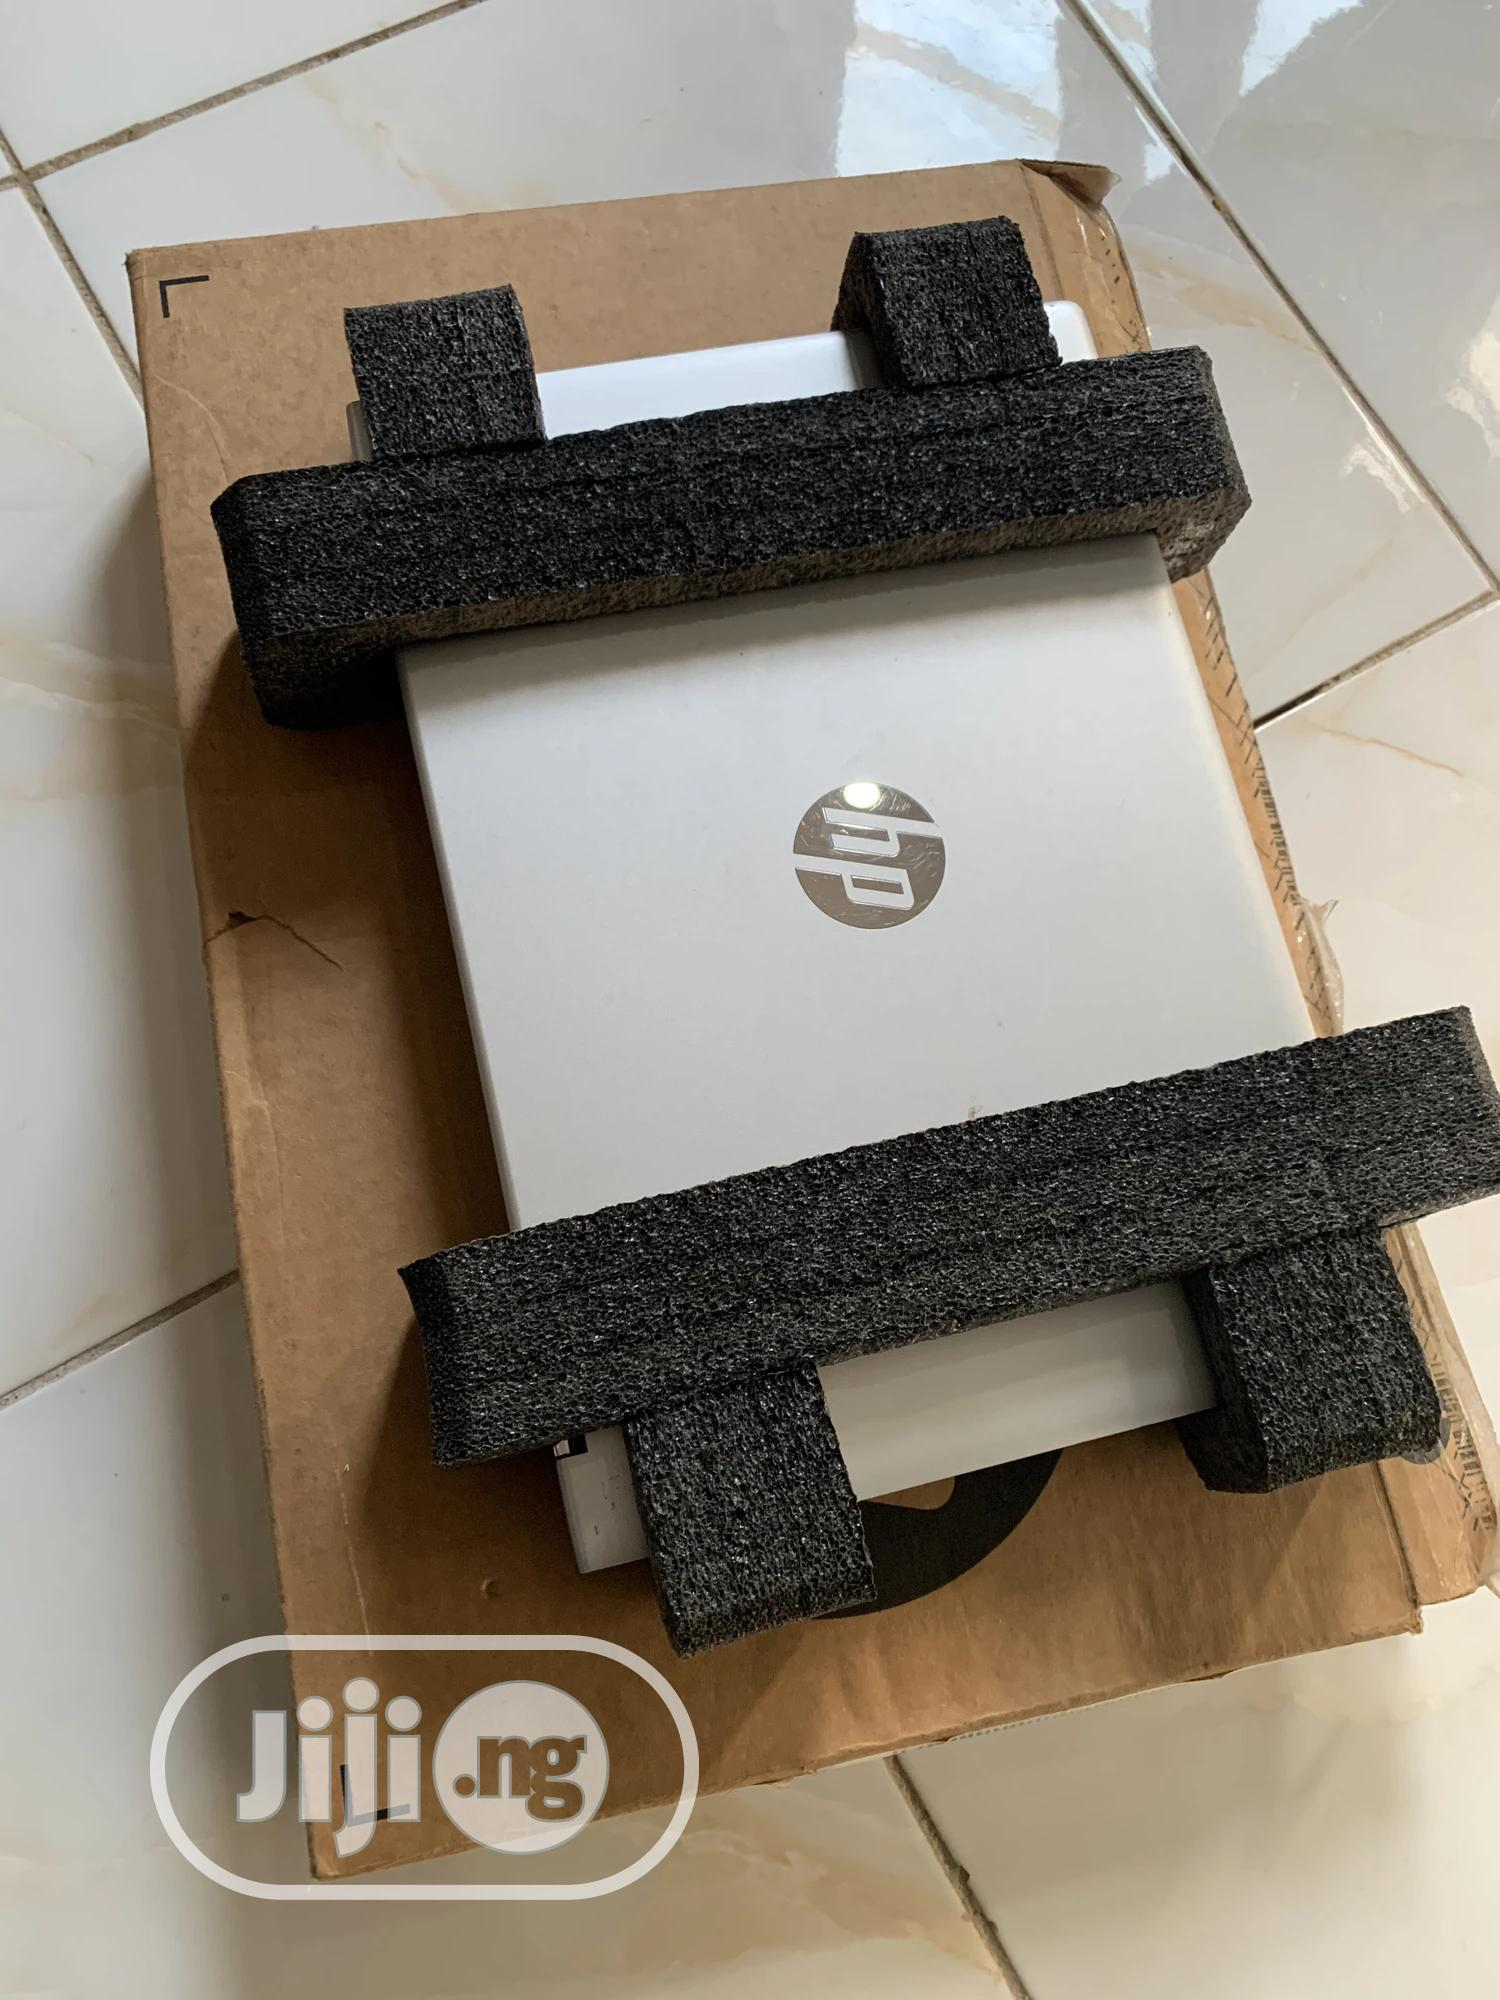 Laptop HP Pavilion 13 X360 8GB Intel Core i3 HDD 1T   Laptops & Computers for sale in Kaura, Abuja (FCT) State, Nigeria